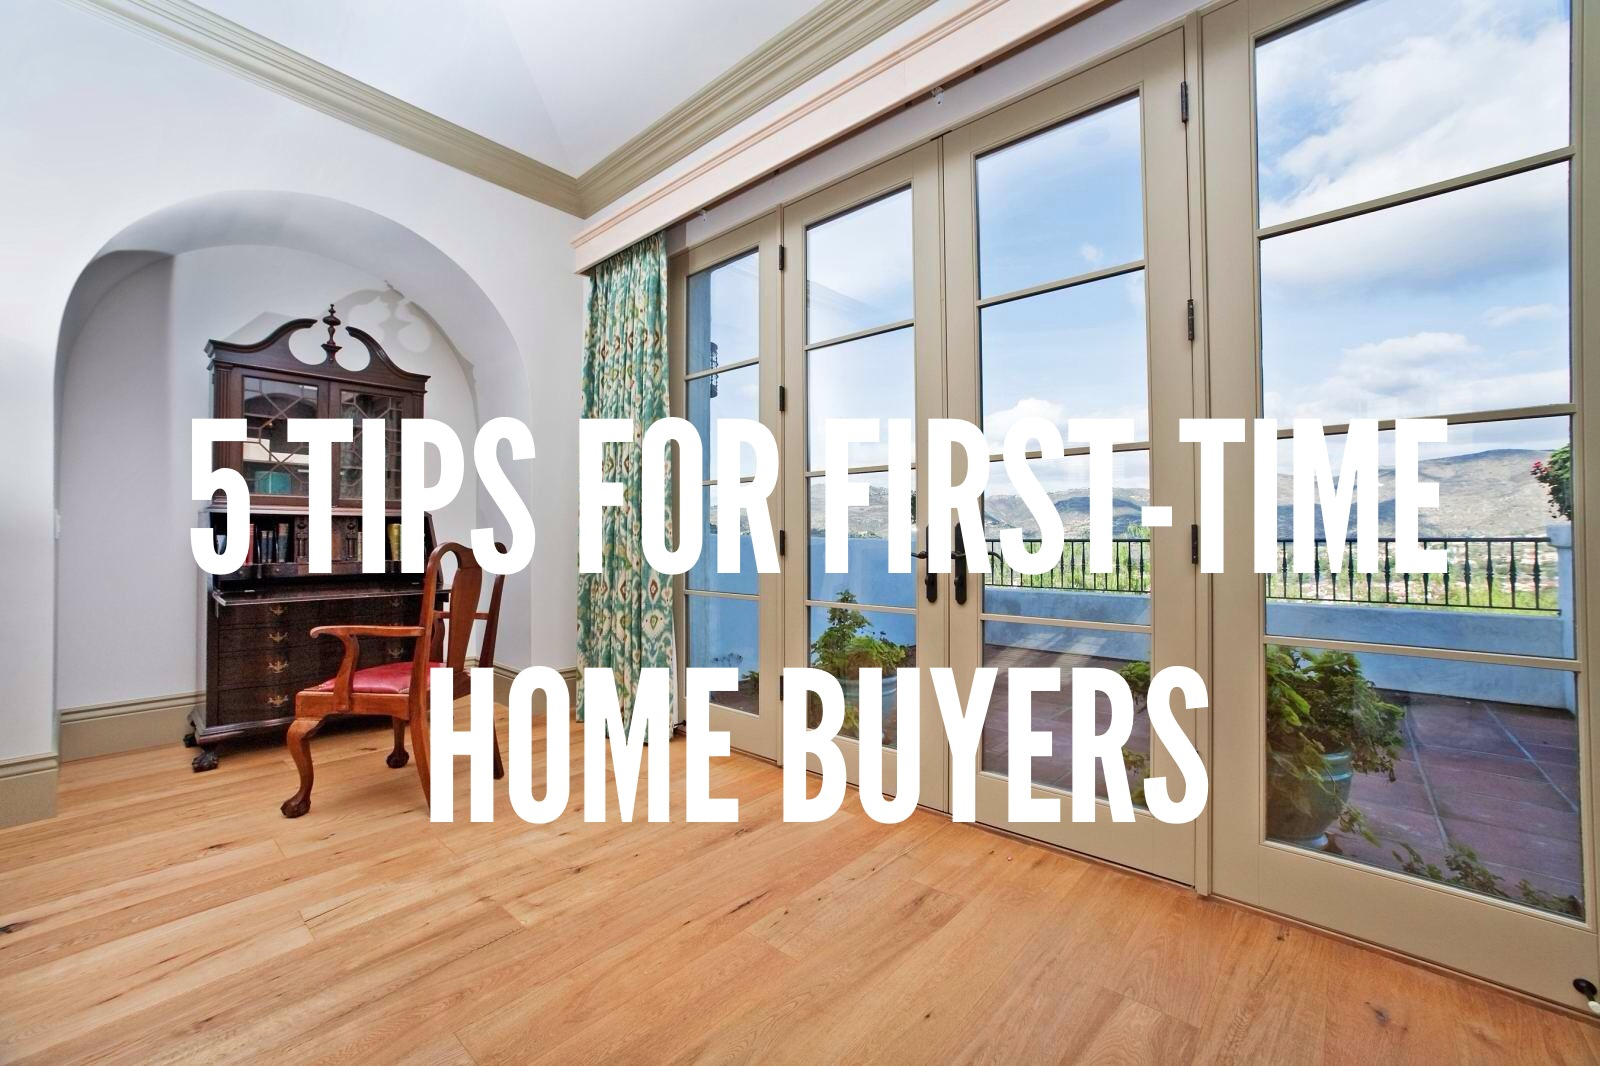 best ideas about time home buyers on 5 tips for time home buyers mtl real estate coach 25